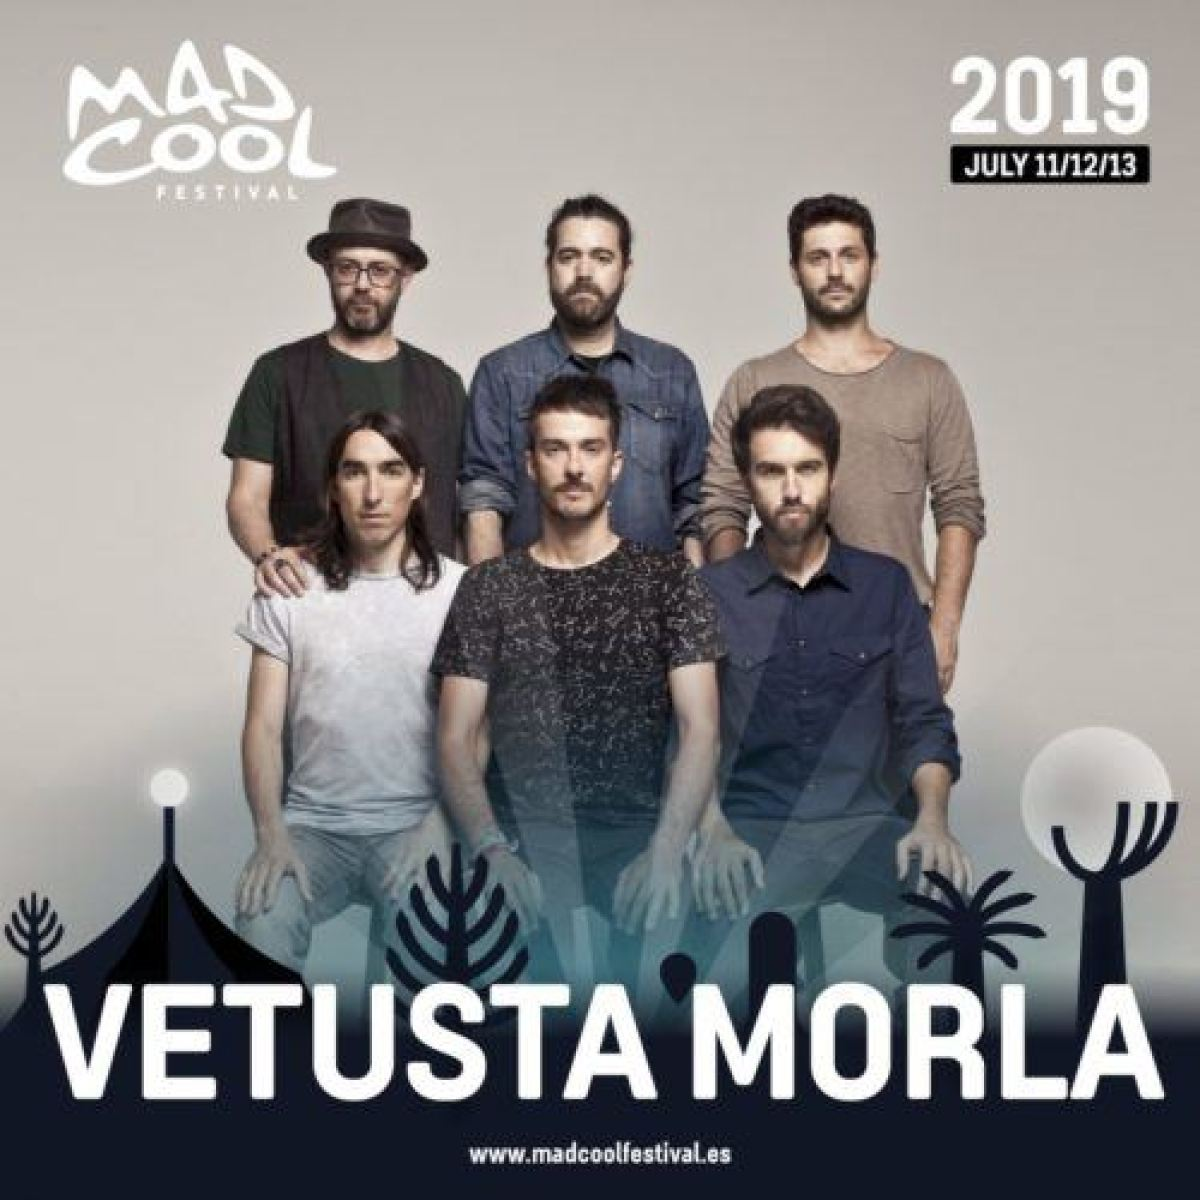 Mad Cool 2019 Vetusta Morla cartel